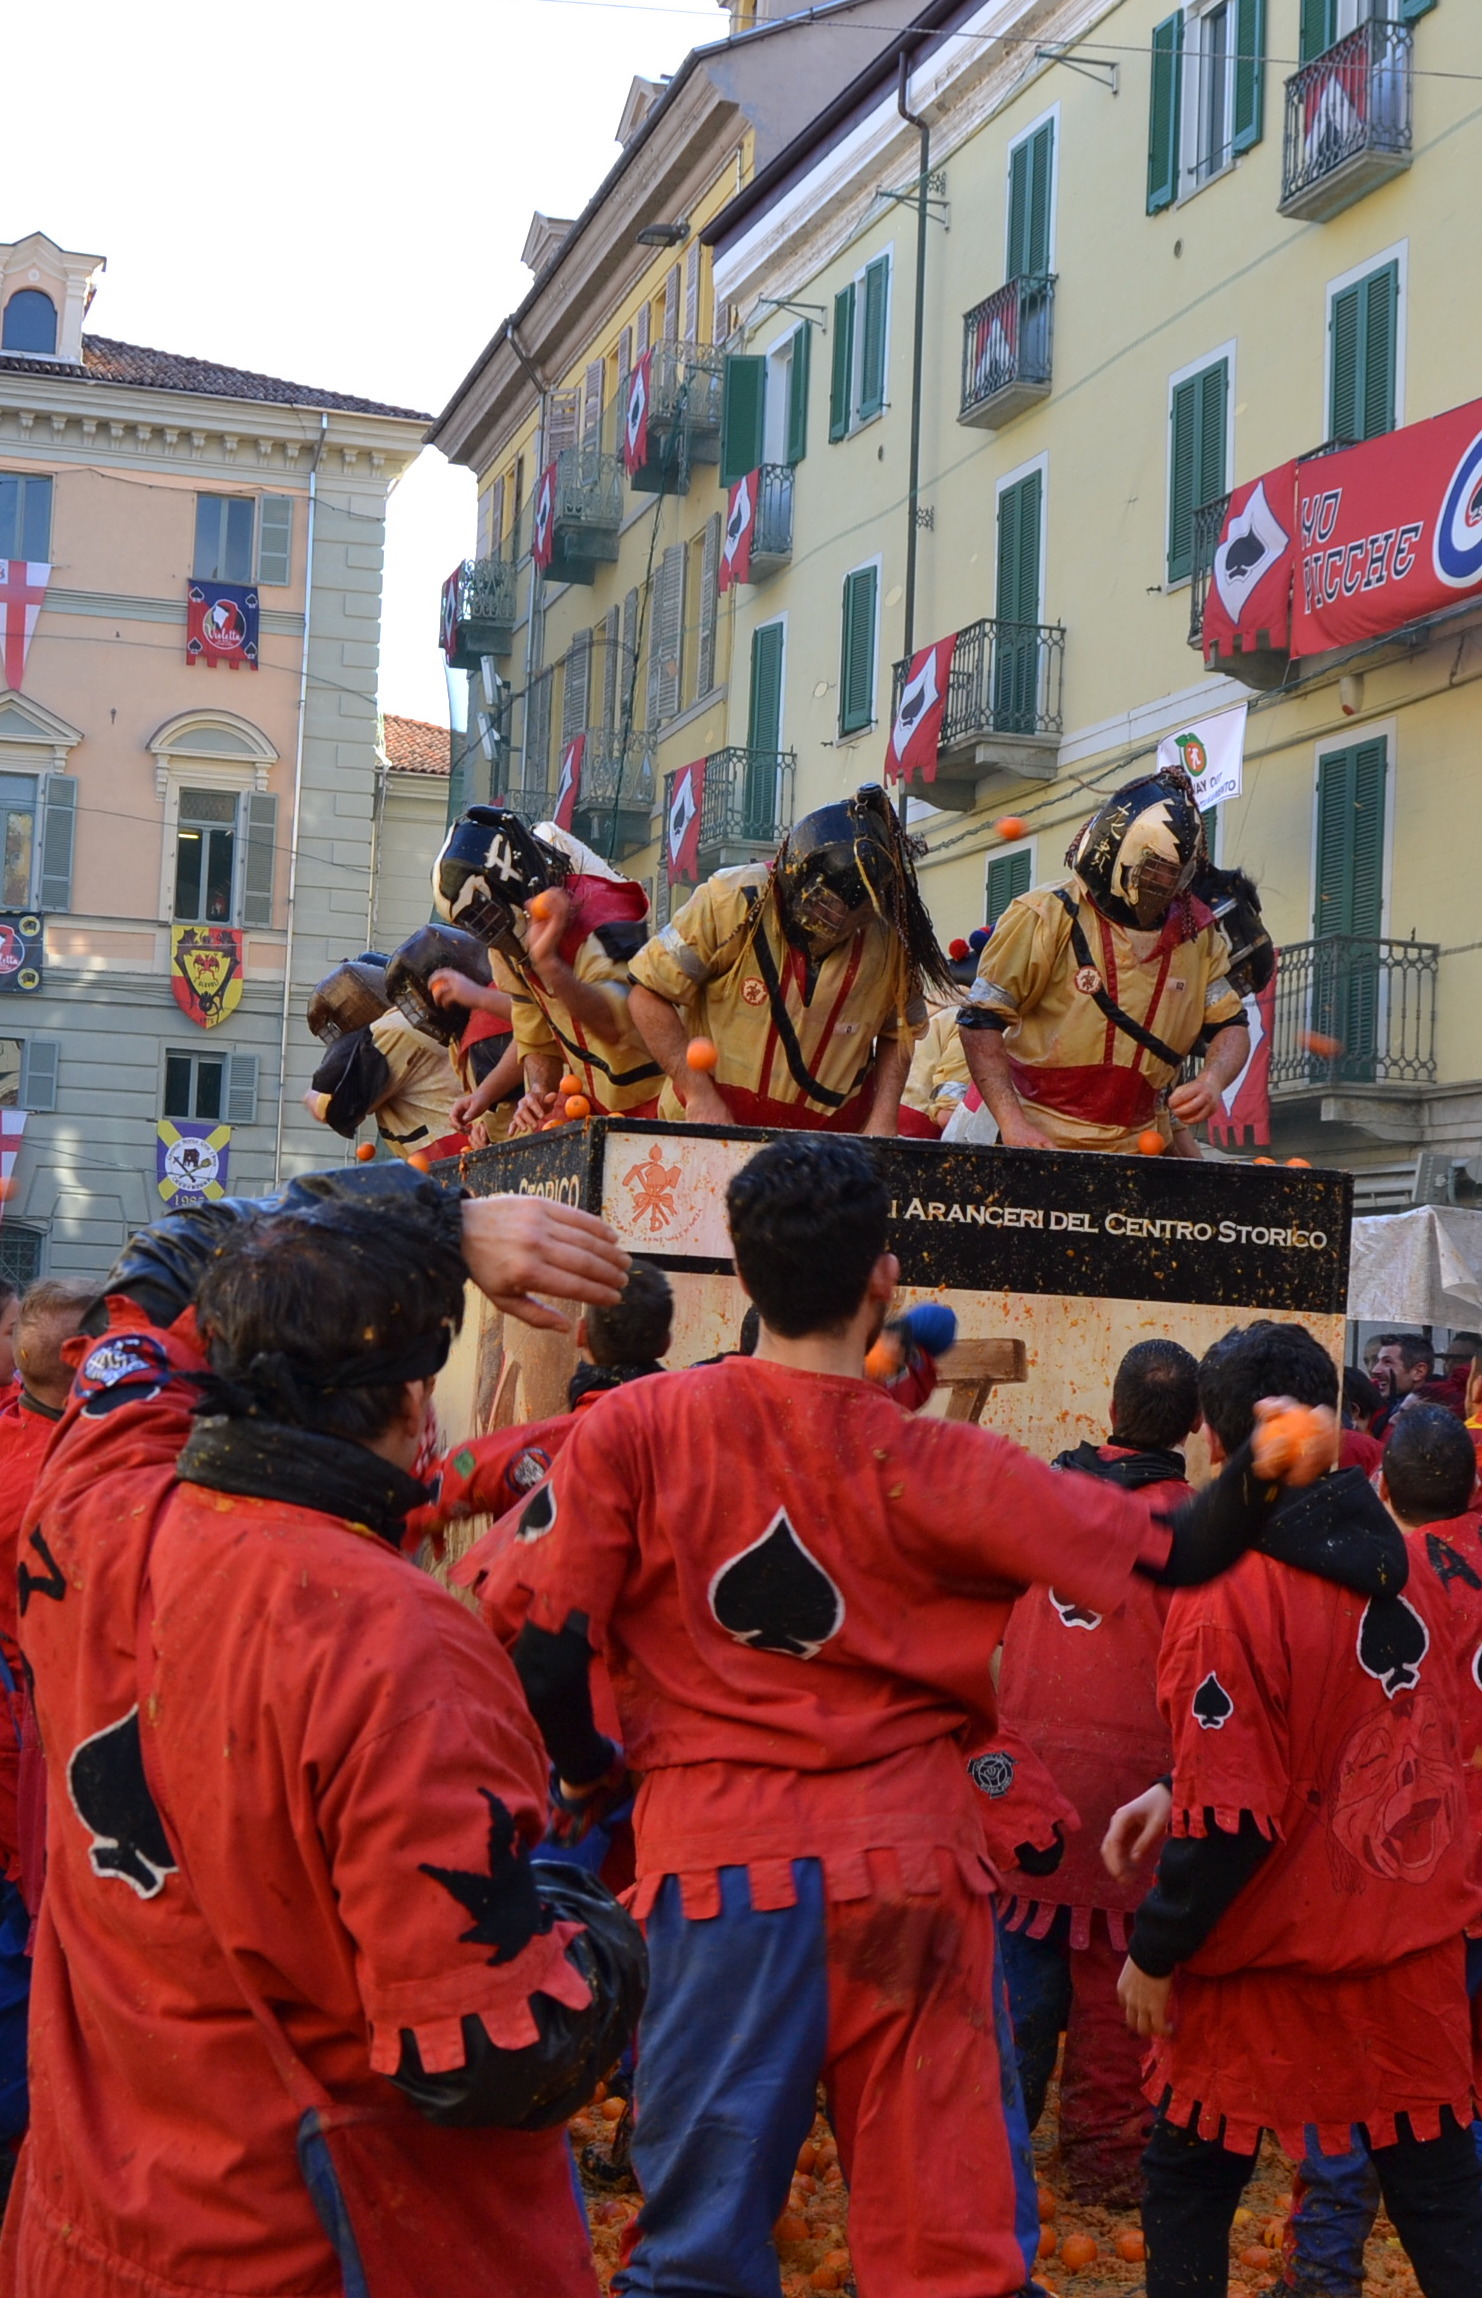 Orange throwers at the battle of the oranges in Ivrea, one of Italy's most spectacular Carnival celebrations